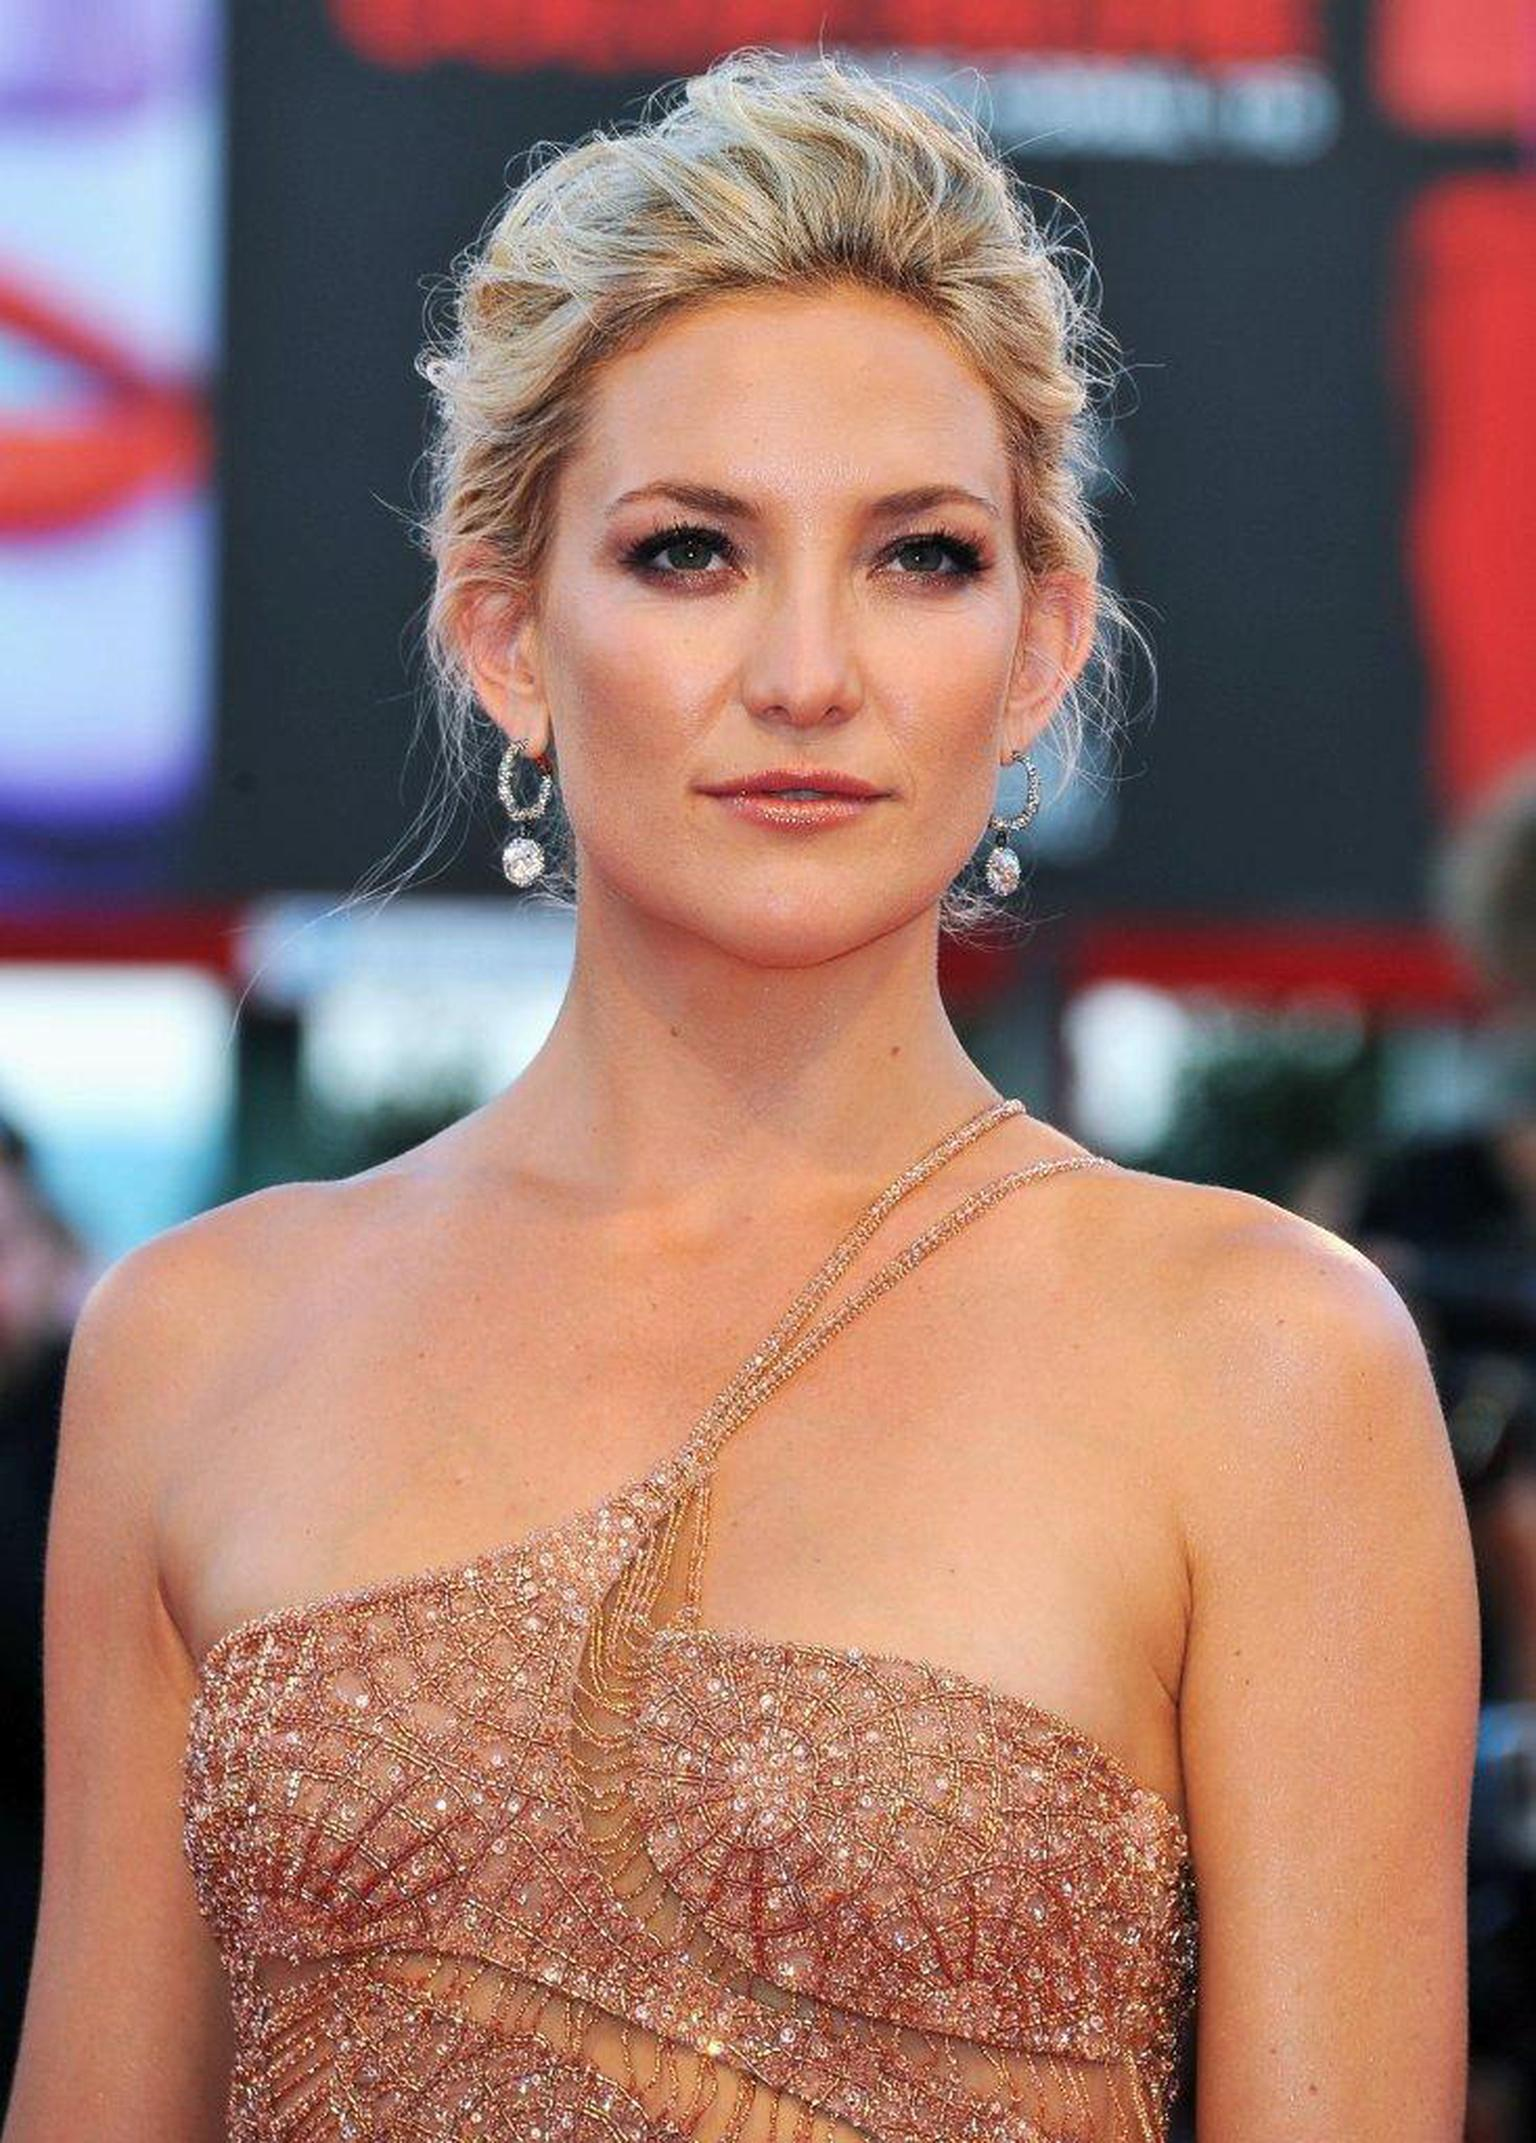 Faberge-Kate-Hudson-in-Faberge-at-Venice-Film-Festival-29.08.12-01